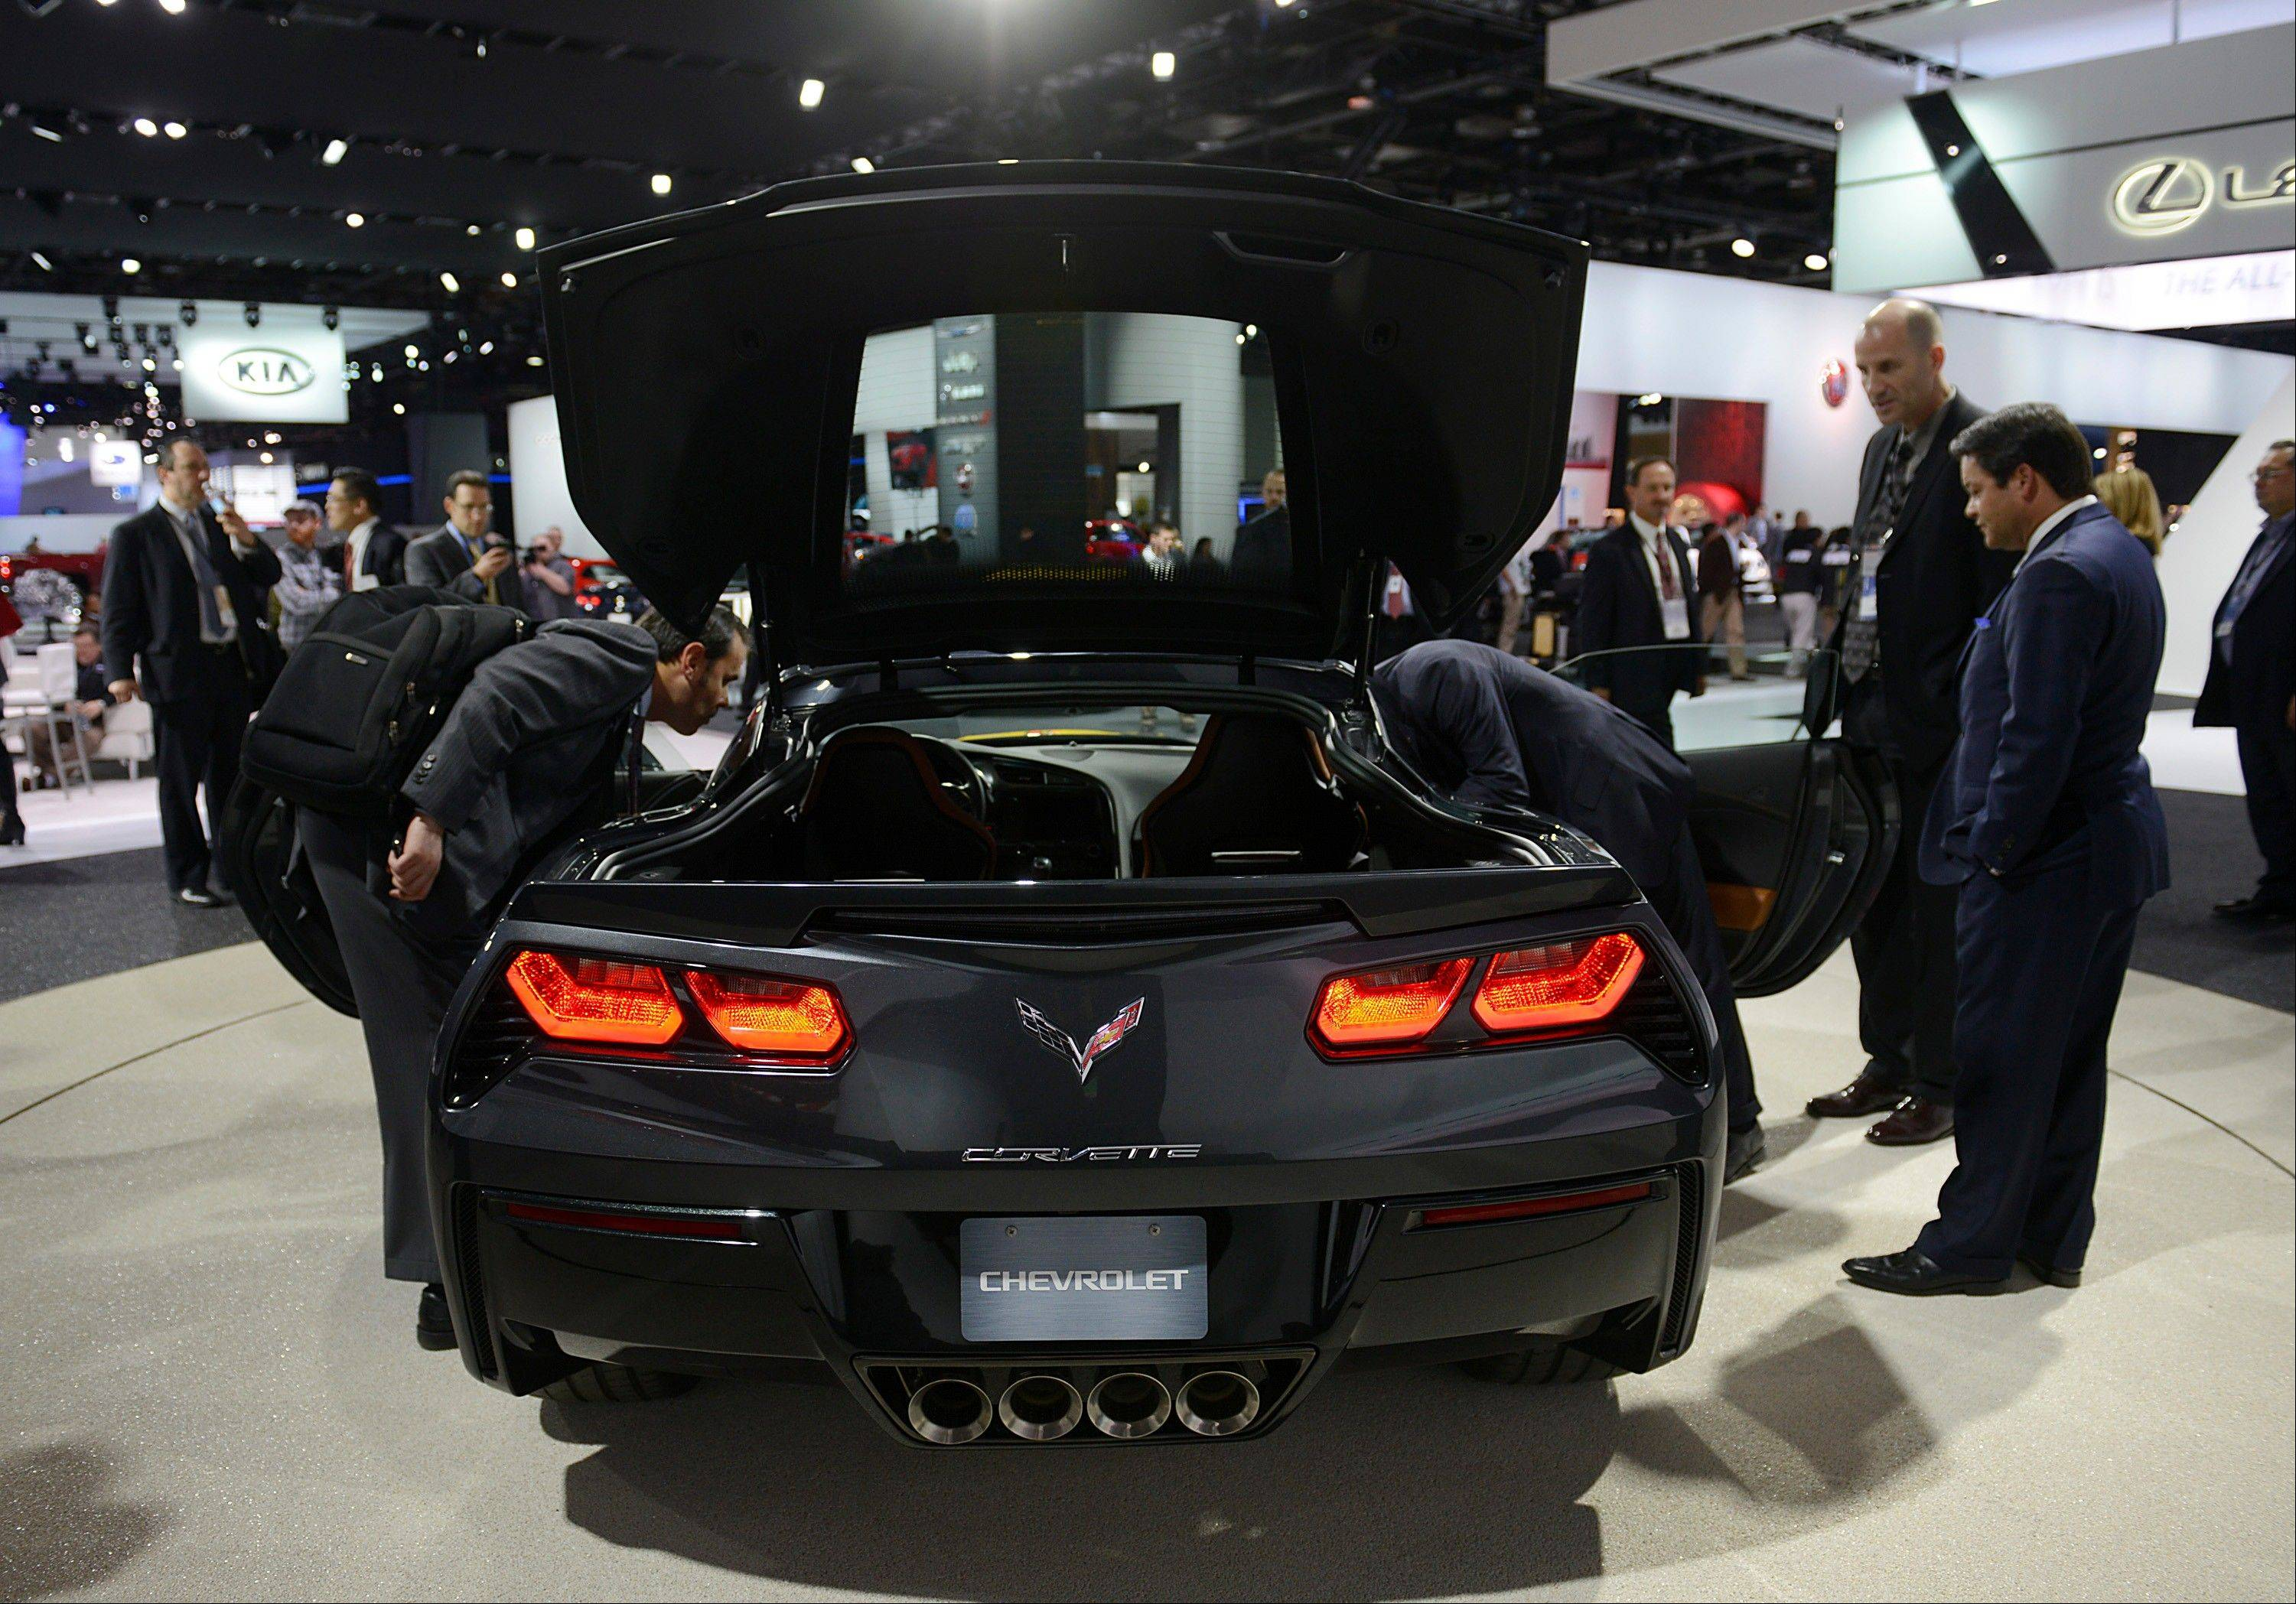 Attendees view the 2014 Chevrolet Corvette Stingray during the 2013 North American International Auto Show (NAIAS) in Detroit, Michigan, U.S., on Tuesday, Jan. 15, 2013. The Detroit auto show runs through Jan. 27 and will display over 500 vehicles, representing the most innovative designs in the world.